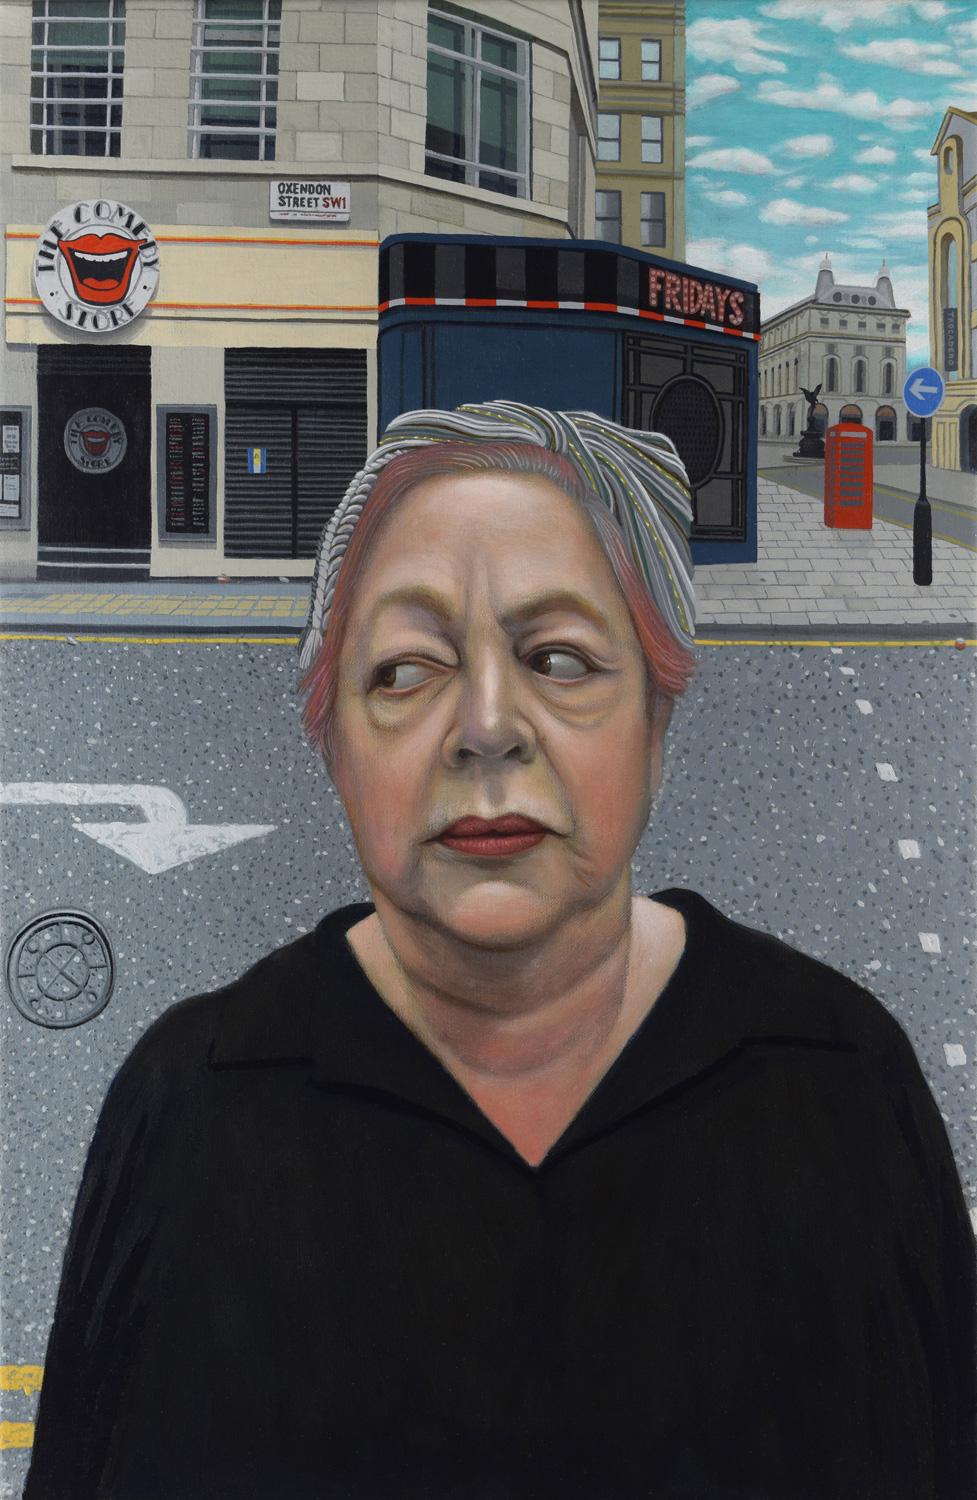 Comedienne Jo Brand and The Comedy Club